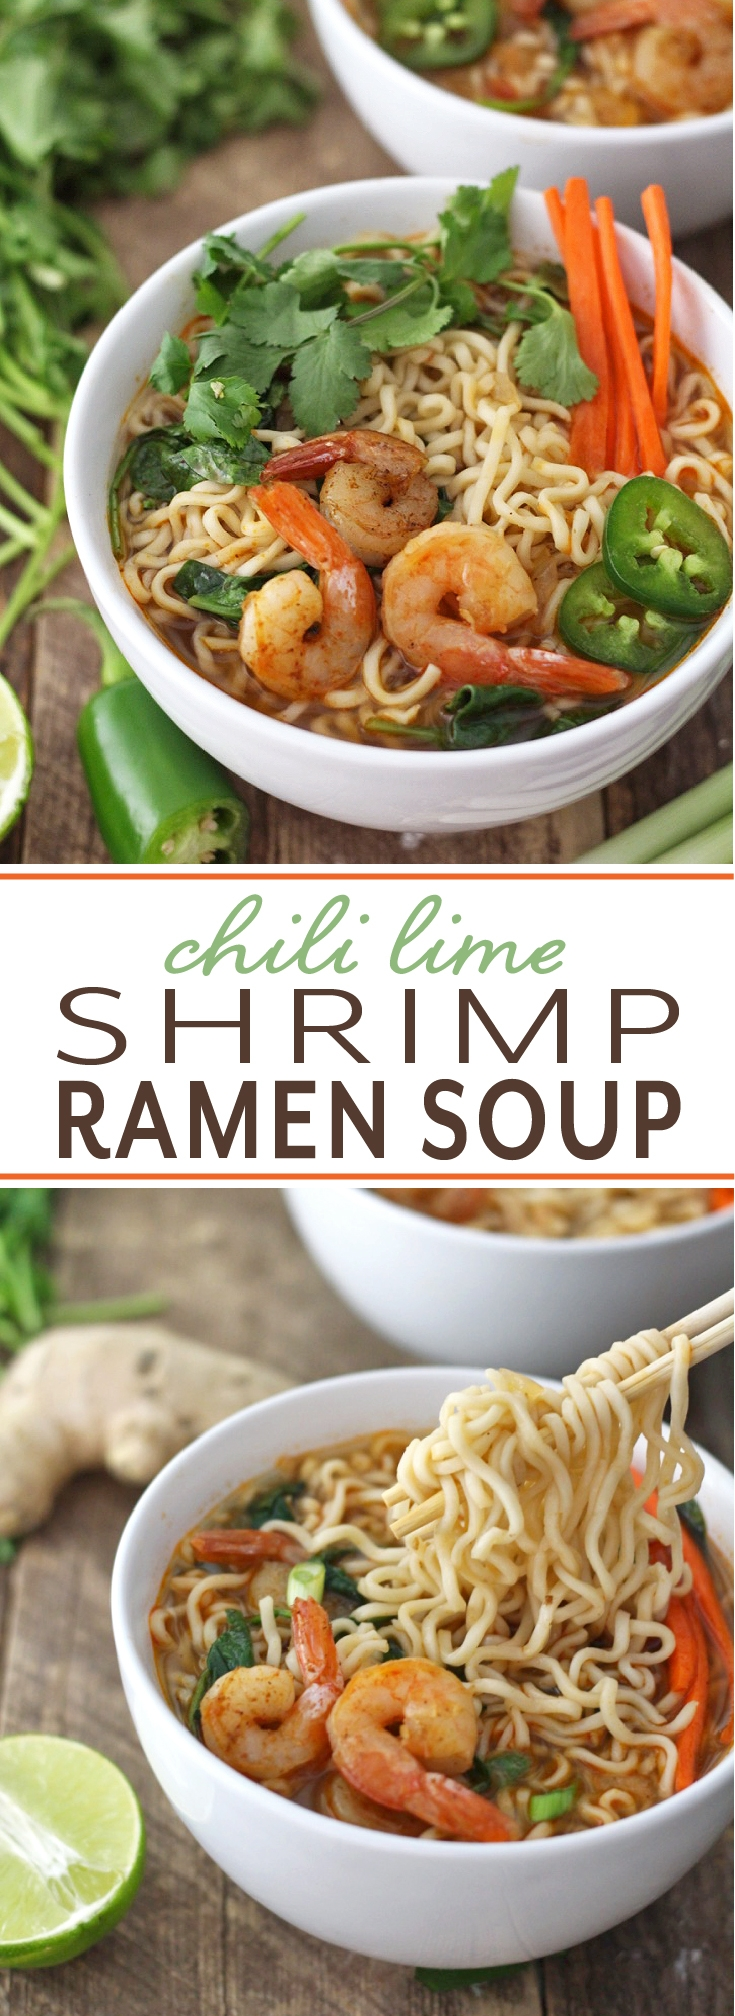 Perfect recipe to satisfy those adult cravings for ramen! Easy to make with vegetable broth, chili seasoning, shrimp and lots of ramen noodles.